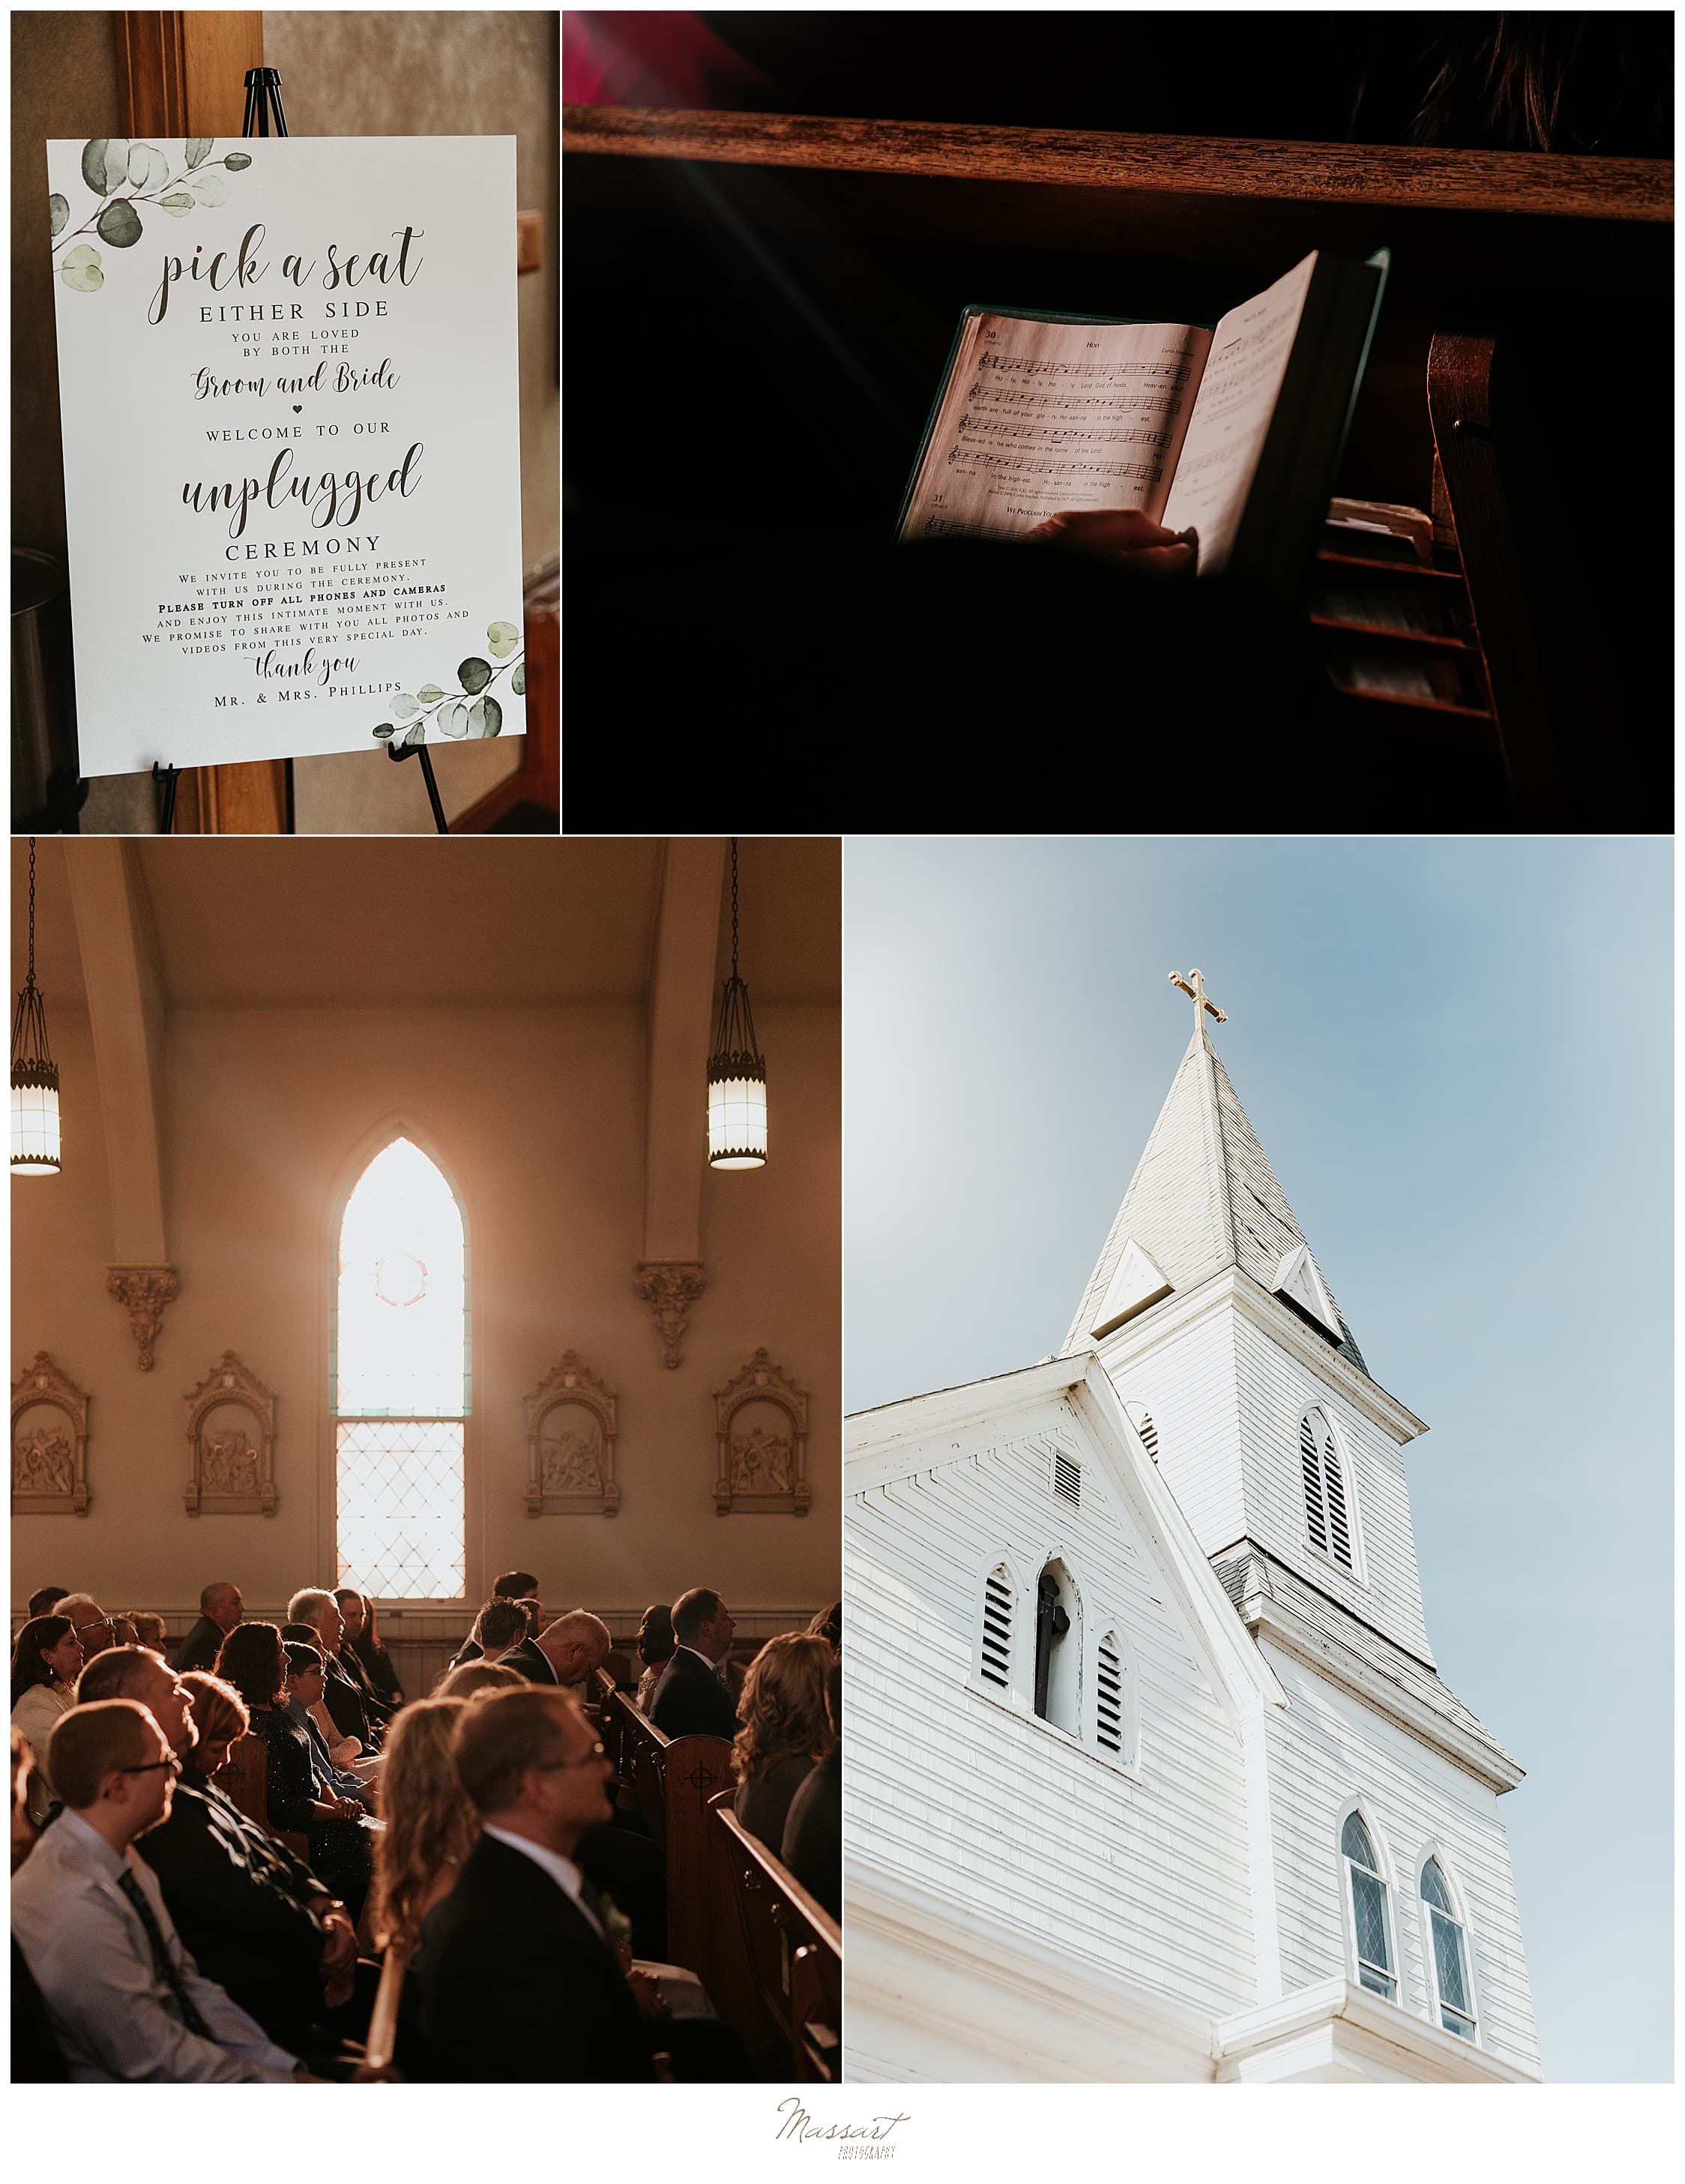 wedding ceremony in Foxboro MA photographed by Massart Photography